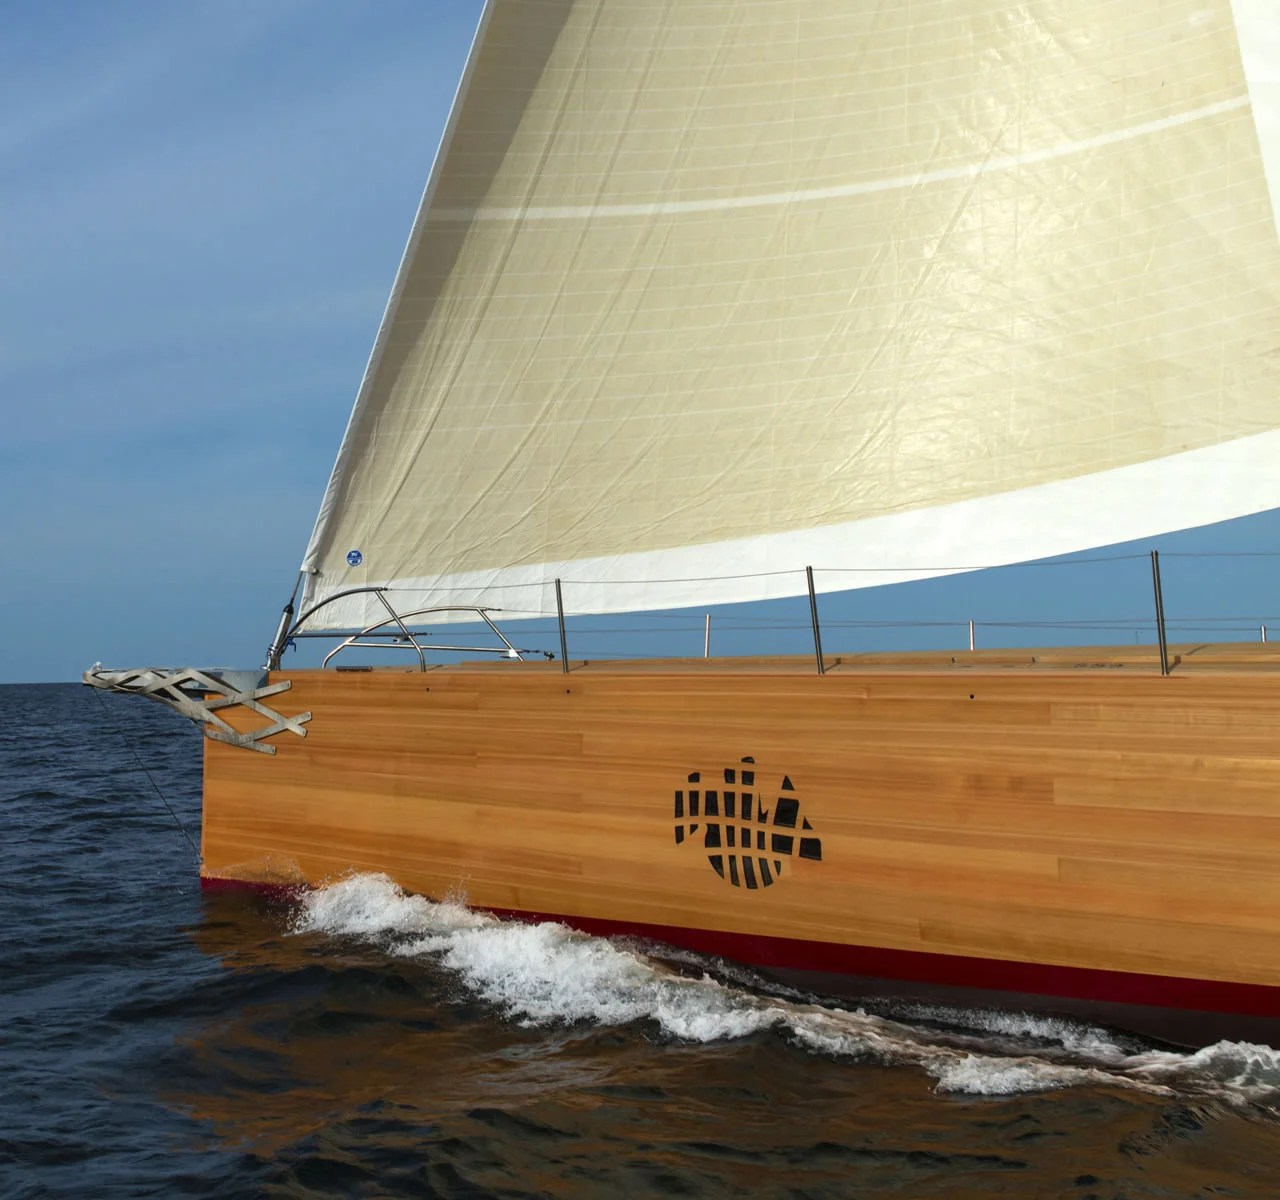 Design Maestro Frank Gehry Designs His Sailboat With